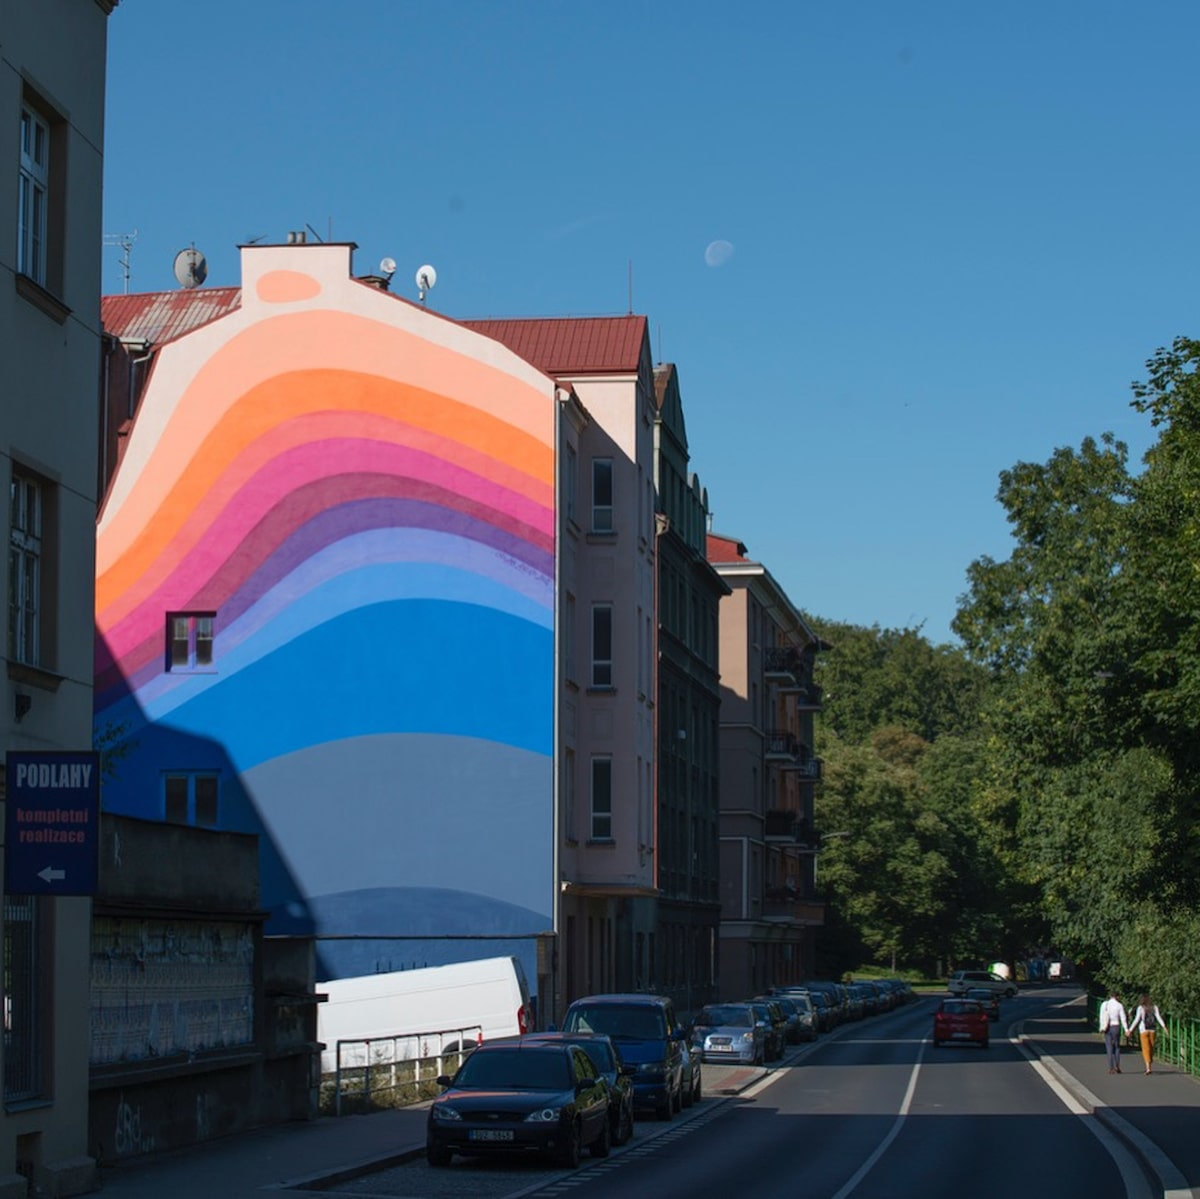 Colorful Street Art Murals by Jan Kaláb